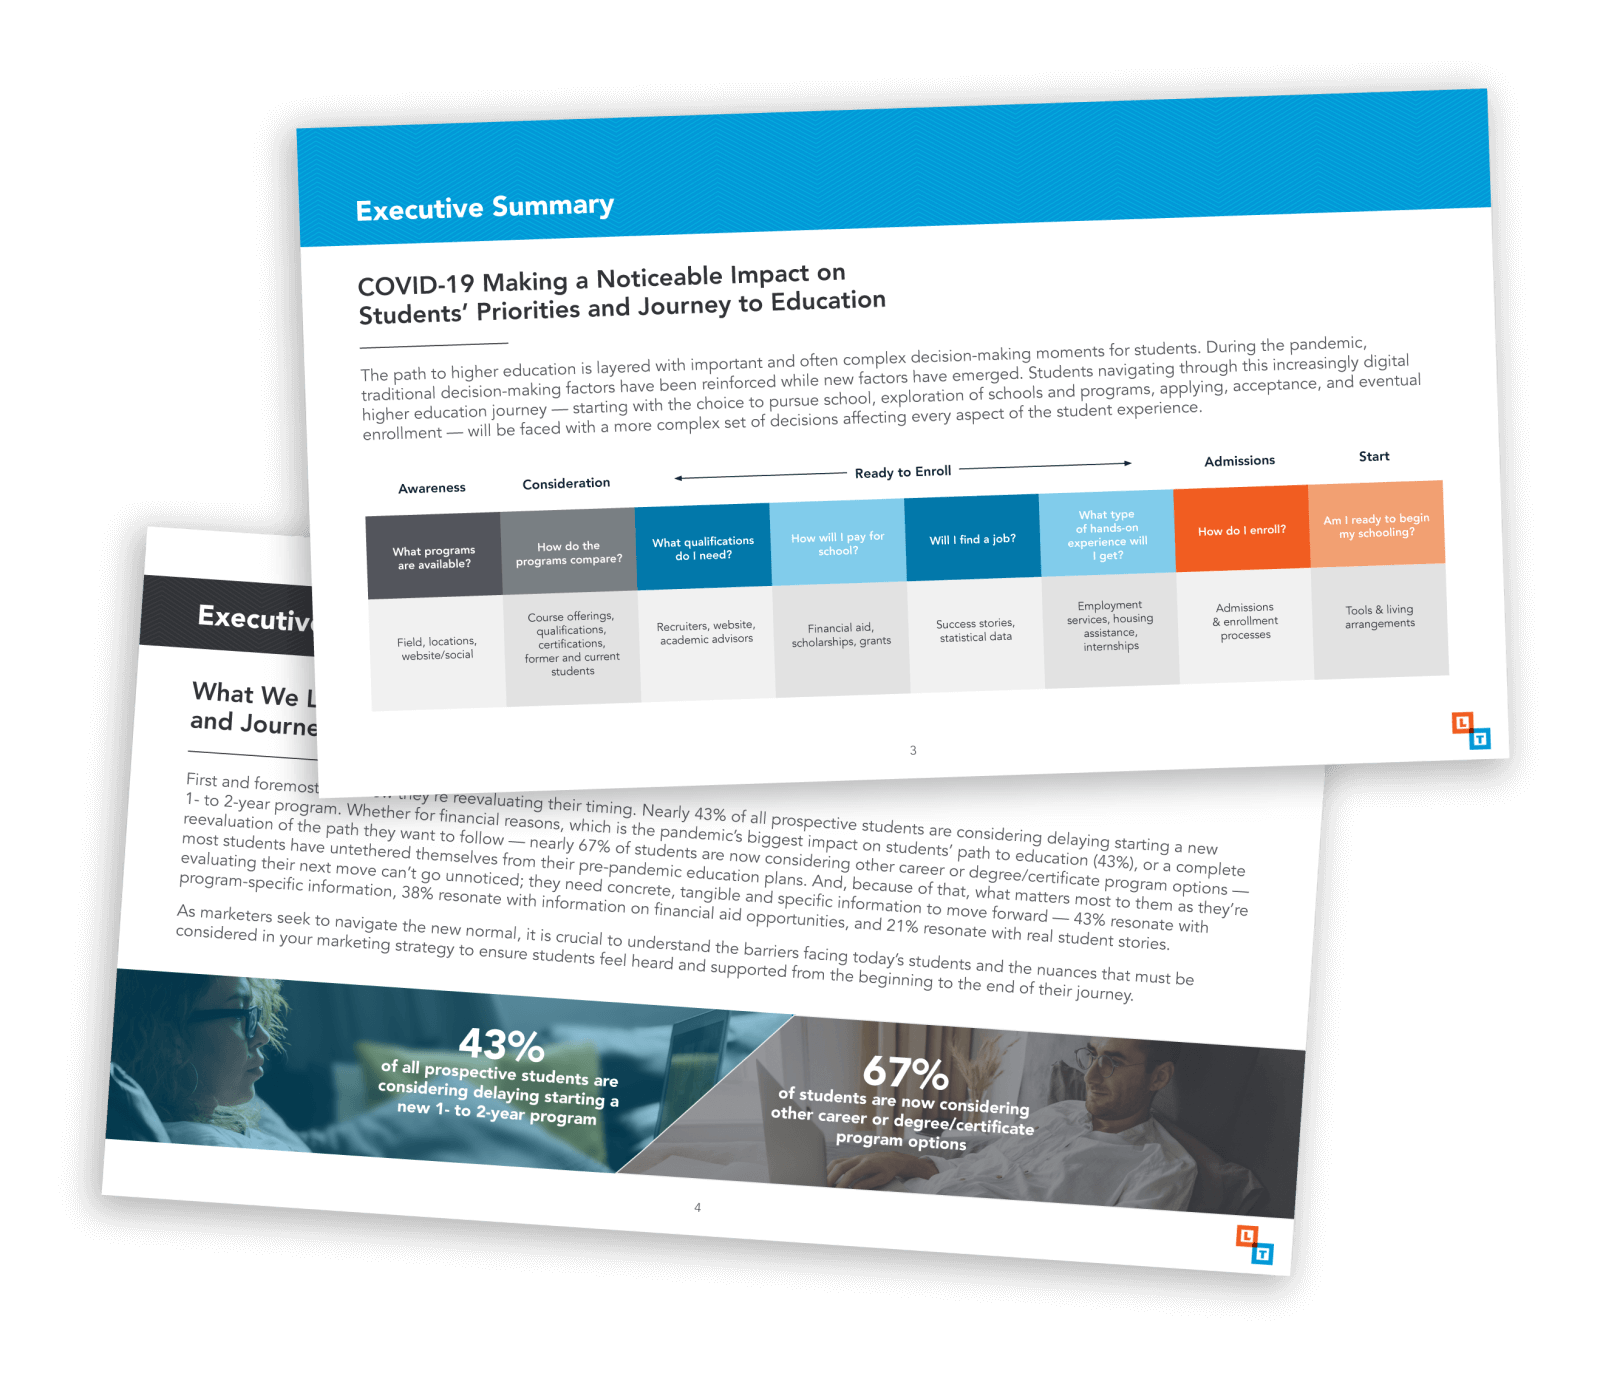 White paper executive summary and survey results